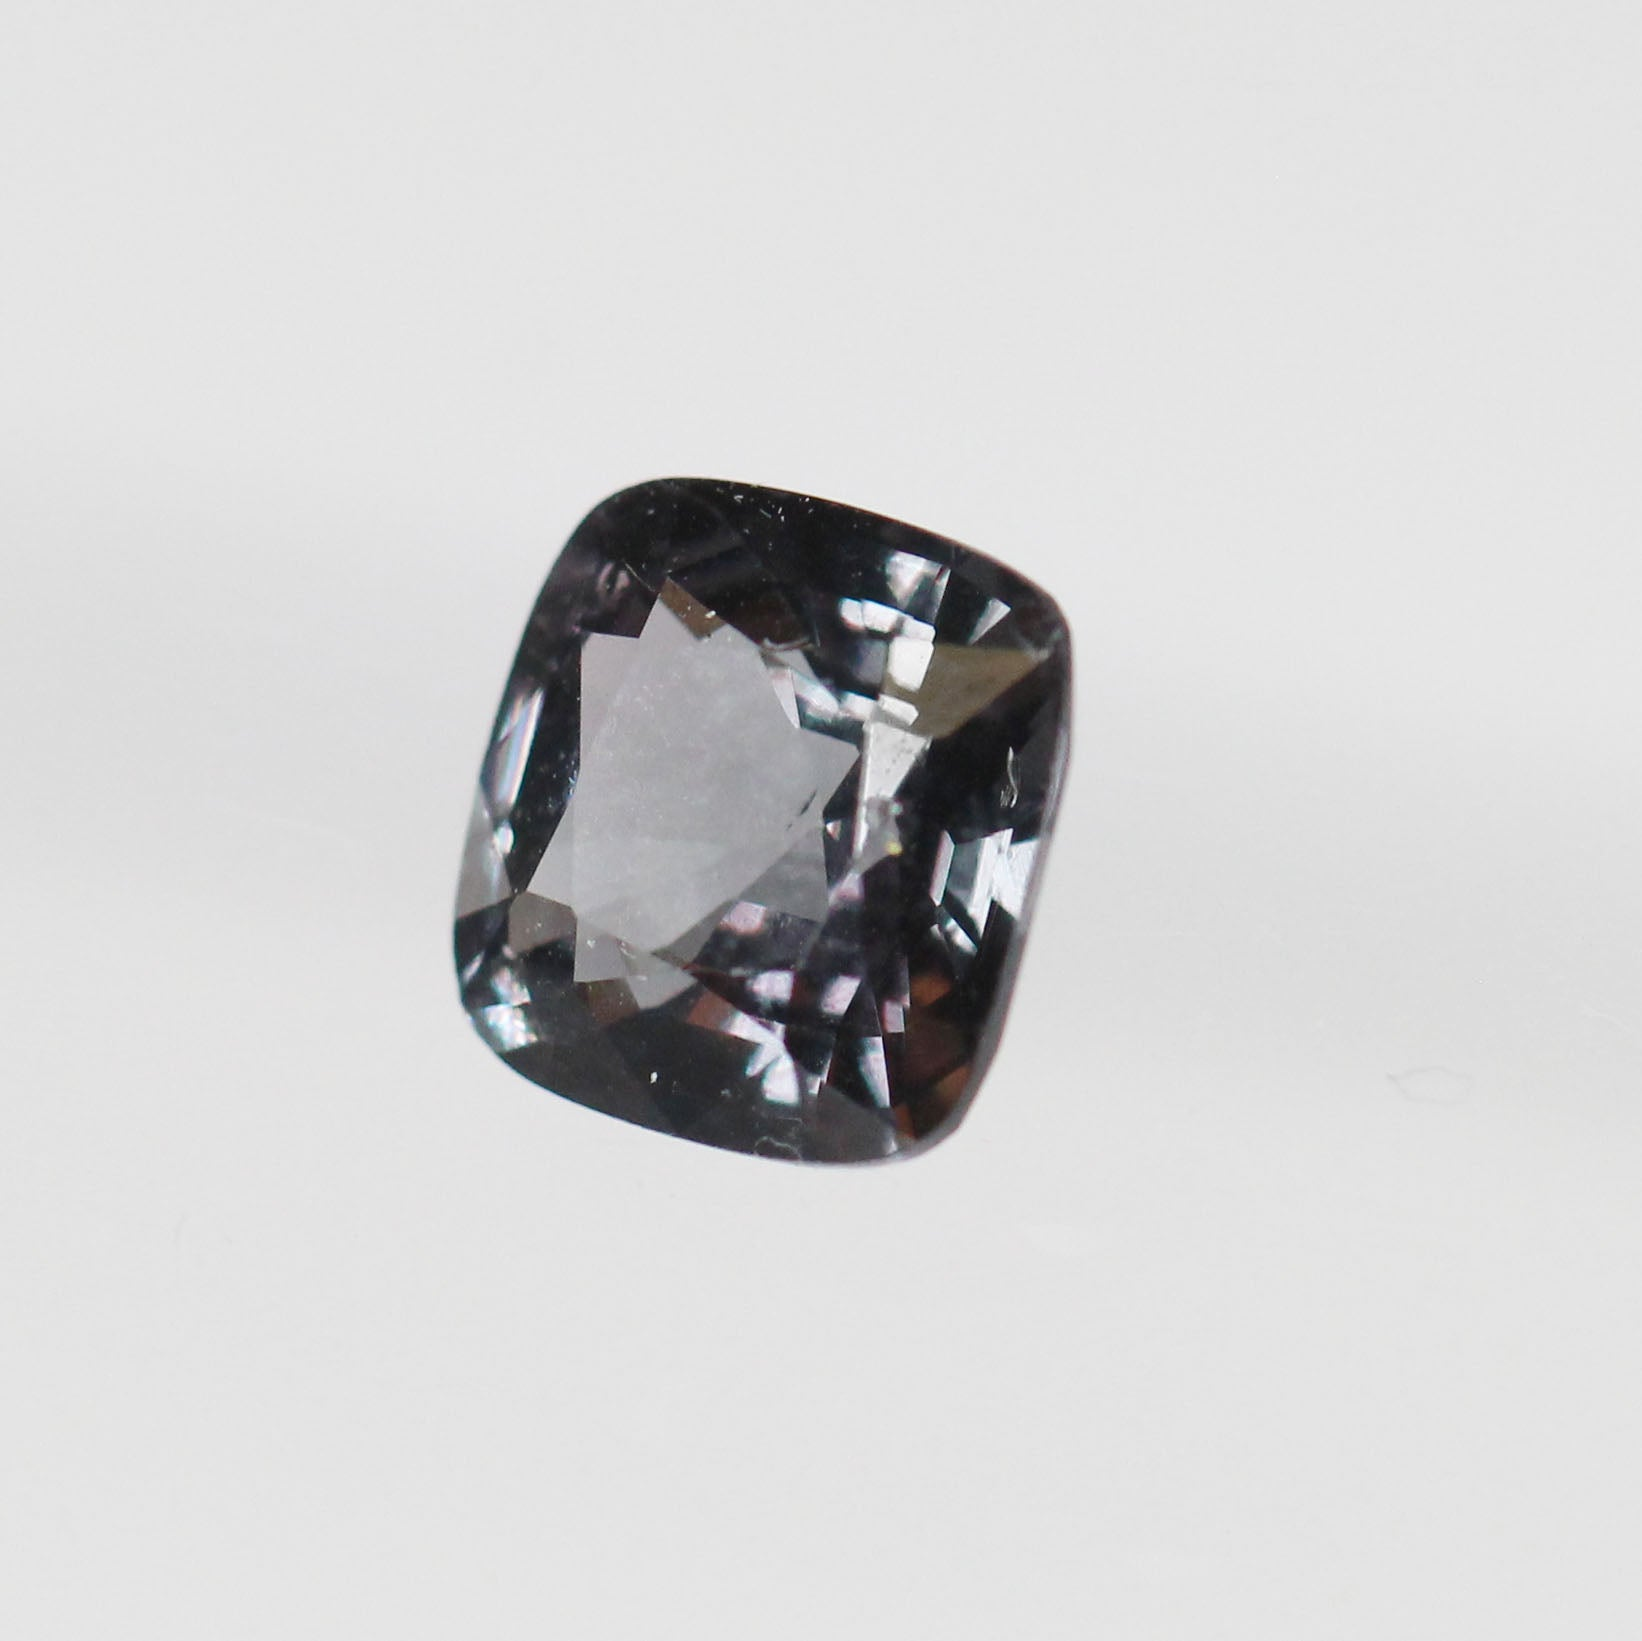 1.57 Carat Cushion Spinel for Custom Work - Inventory Code CBSP157 - Celestial Diamonds ® by Midwinter Co.